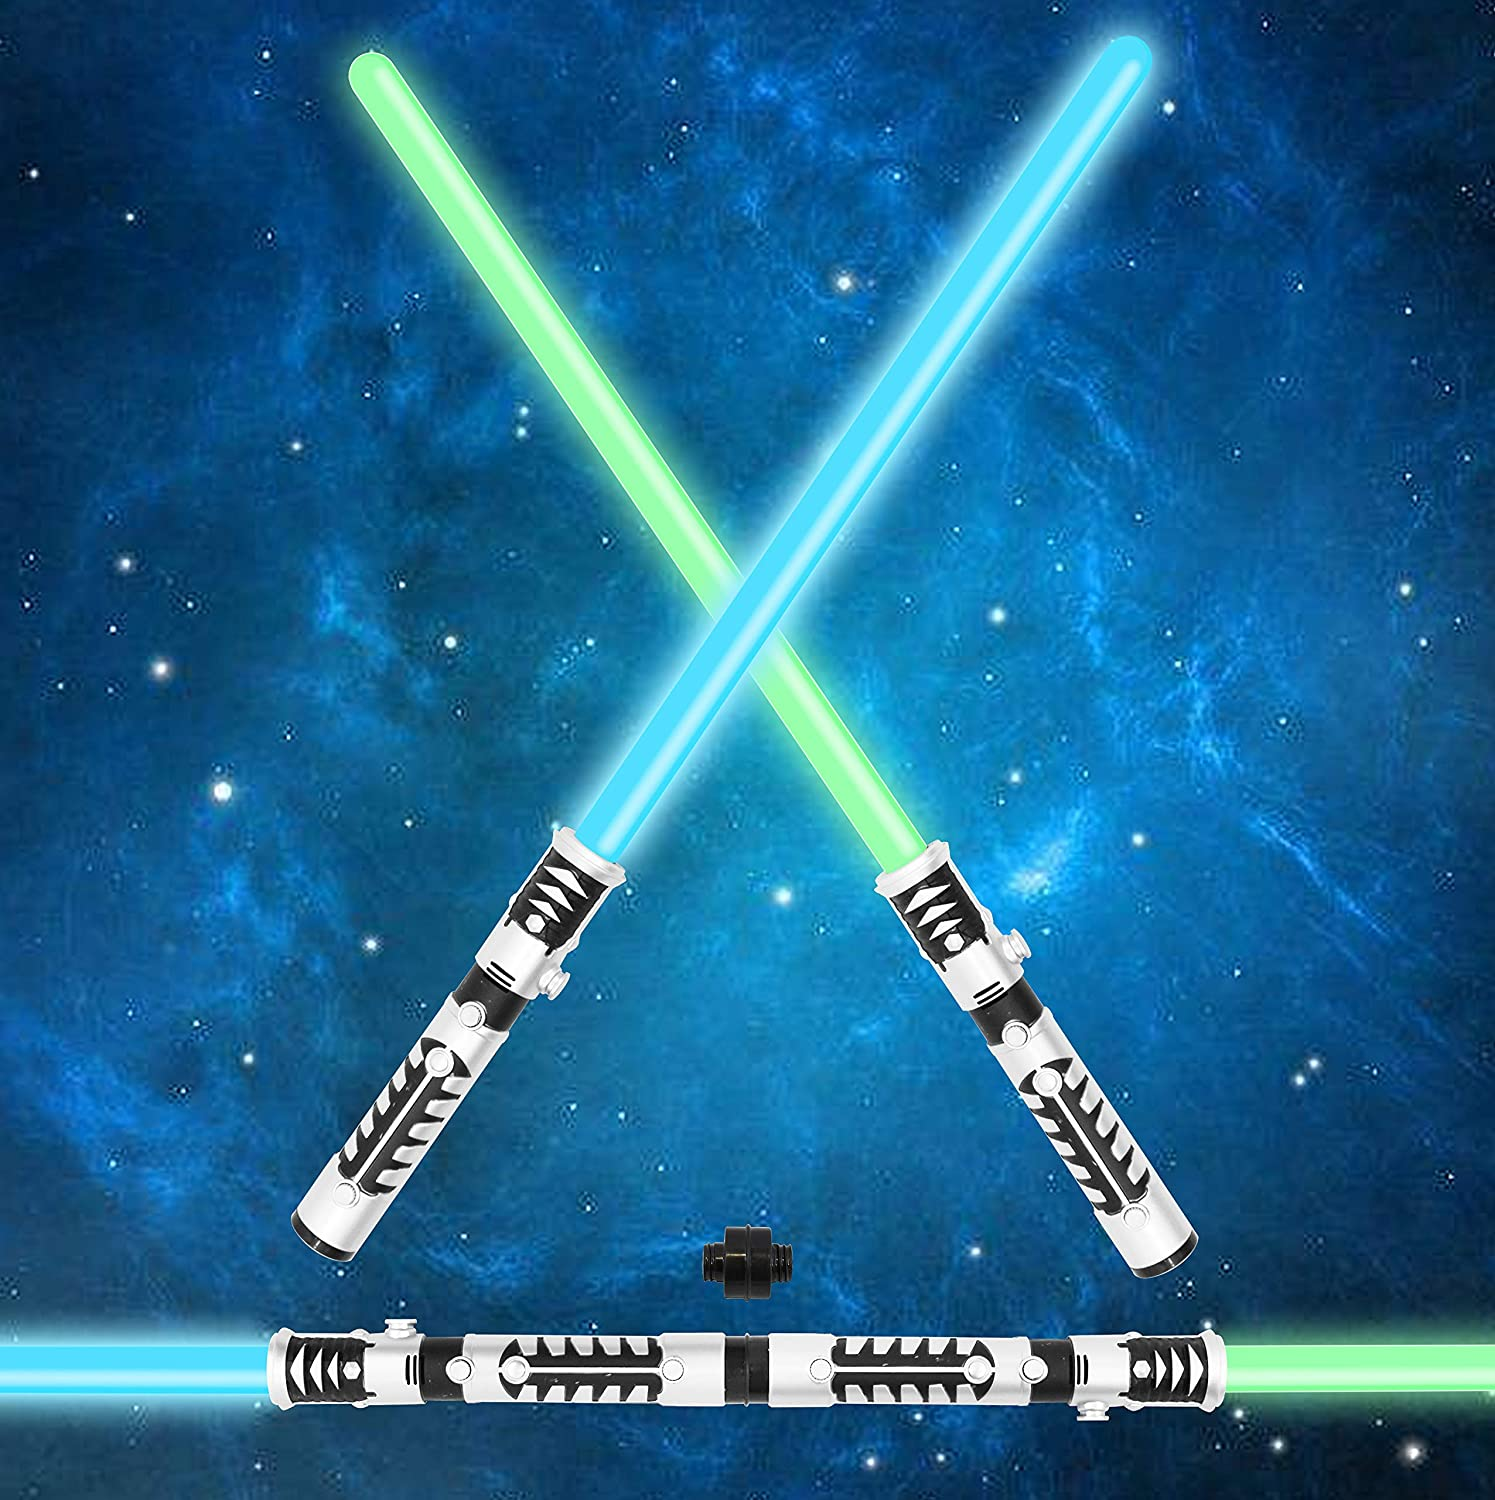 JOYIN Light Up Saber 2-in-1 LED FX Dual Laser Swords Set with Sound (Motion Sensitive) and Realistic Sliver Handle for Halloween Costume Accessories, Xmas Presents, Galaxy War Fighters and Warriors